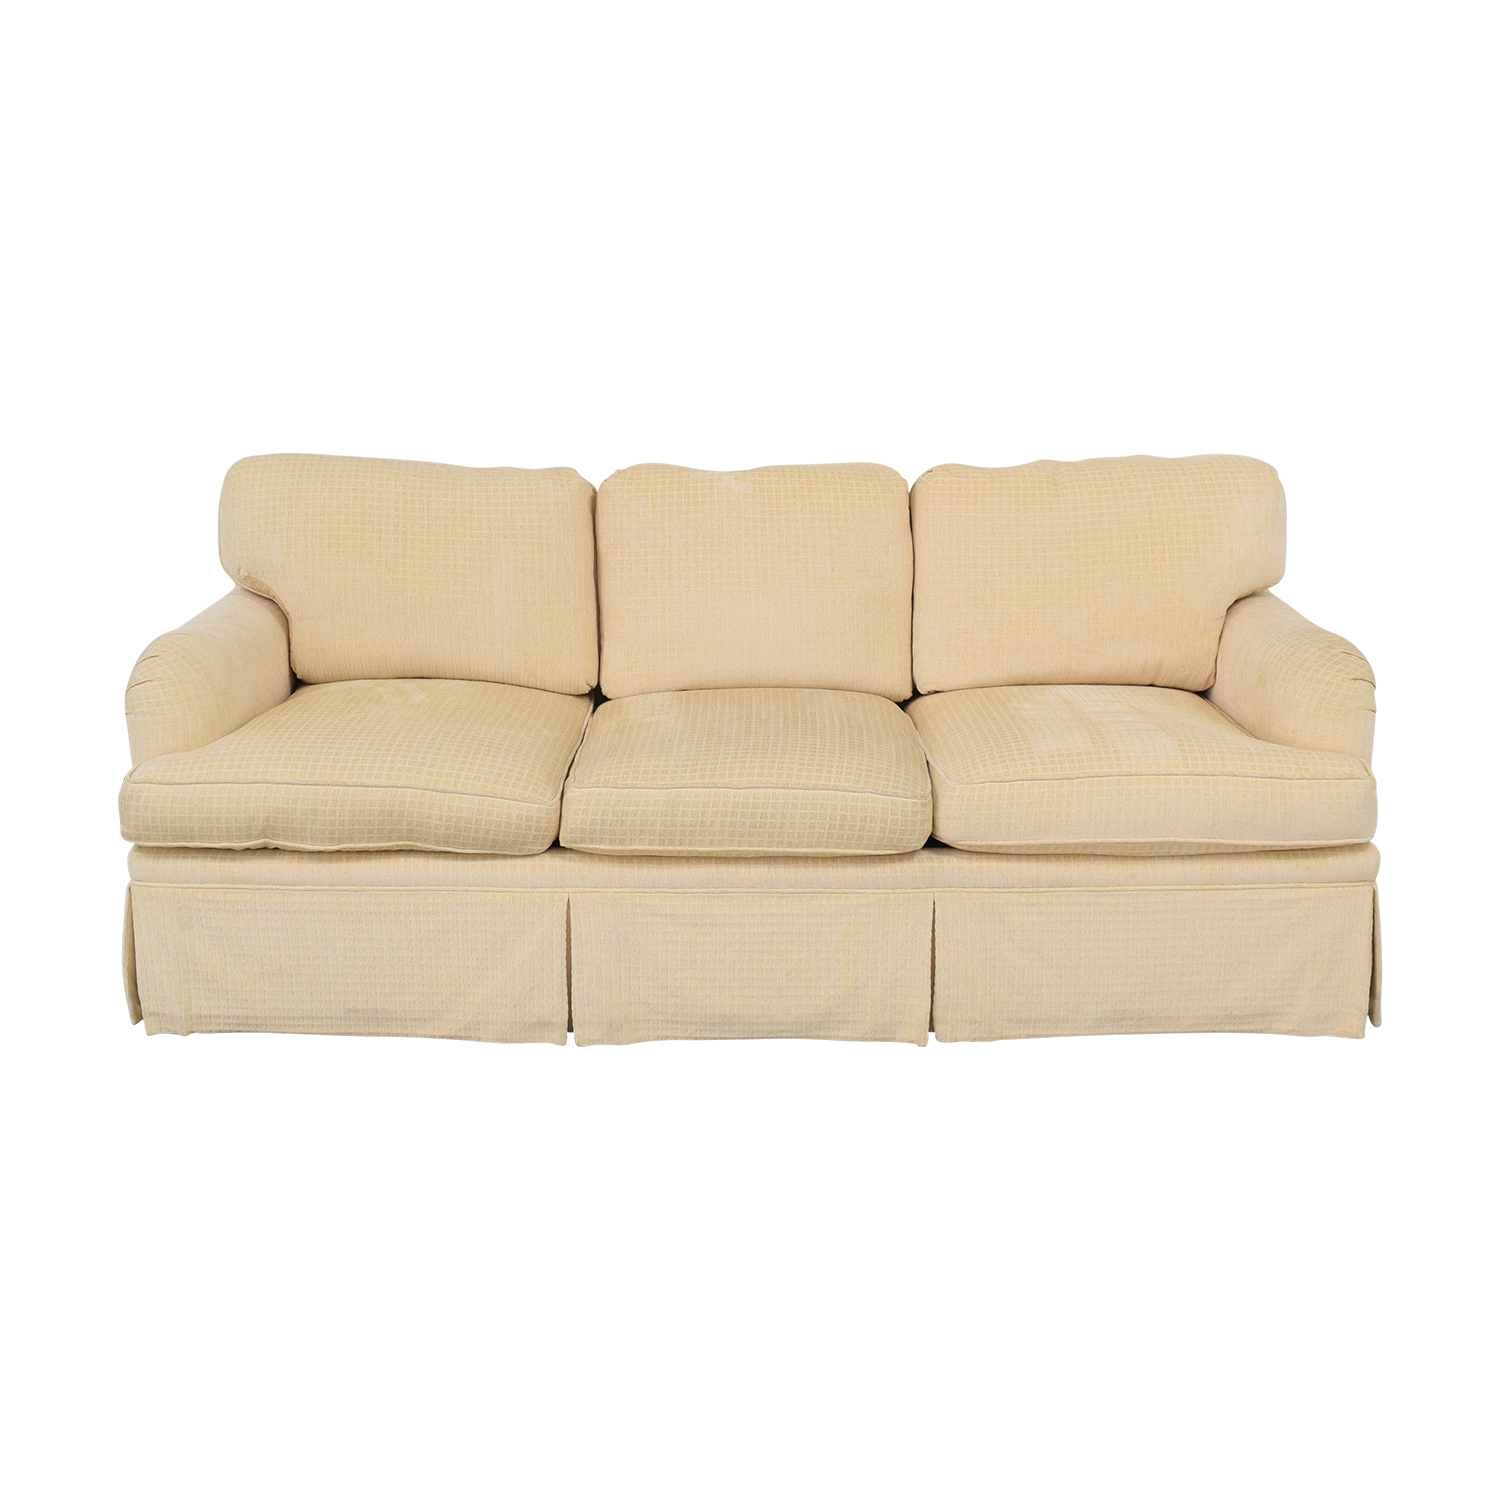 Mason-Art Mason-Art Three Seat Skirted Sofa ct